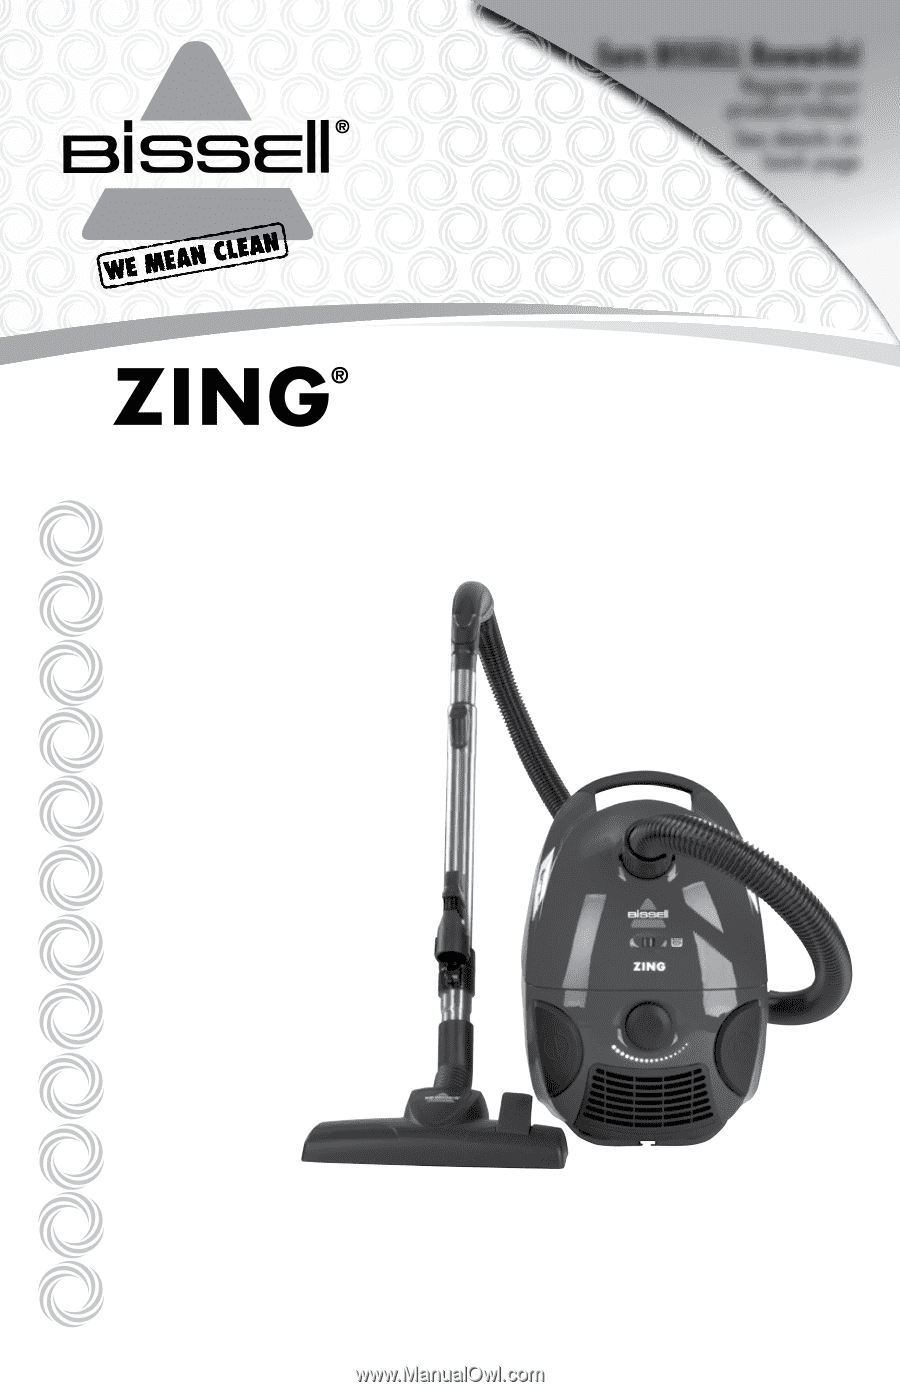 Bissell Zing 174 Bagged Canister Vacuum 4122 User Guide